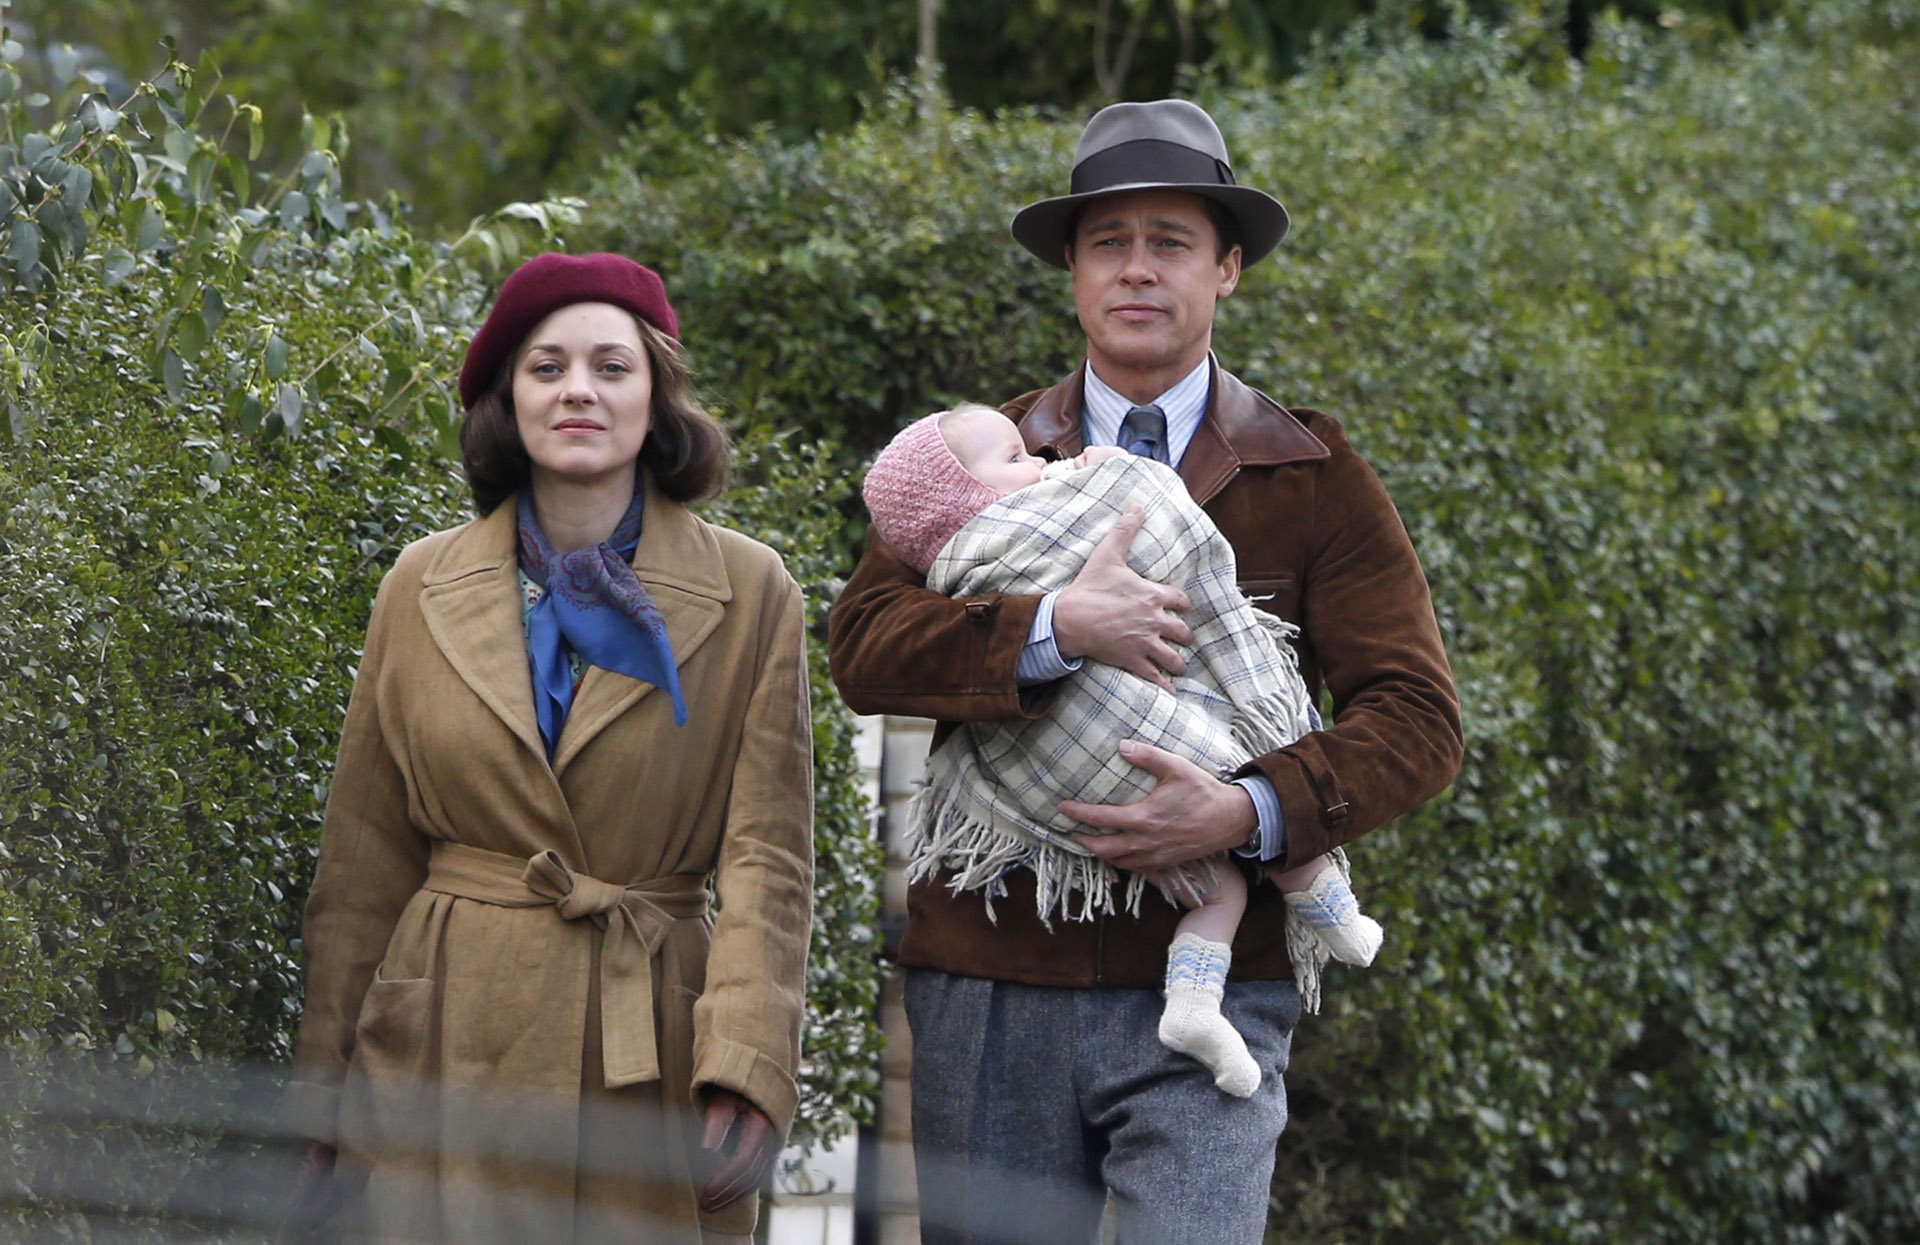 Mandatory Credit: Photo by Beretta/Sims/REX/Shutterstock (5622106dm)